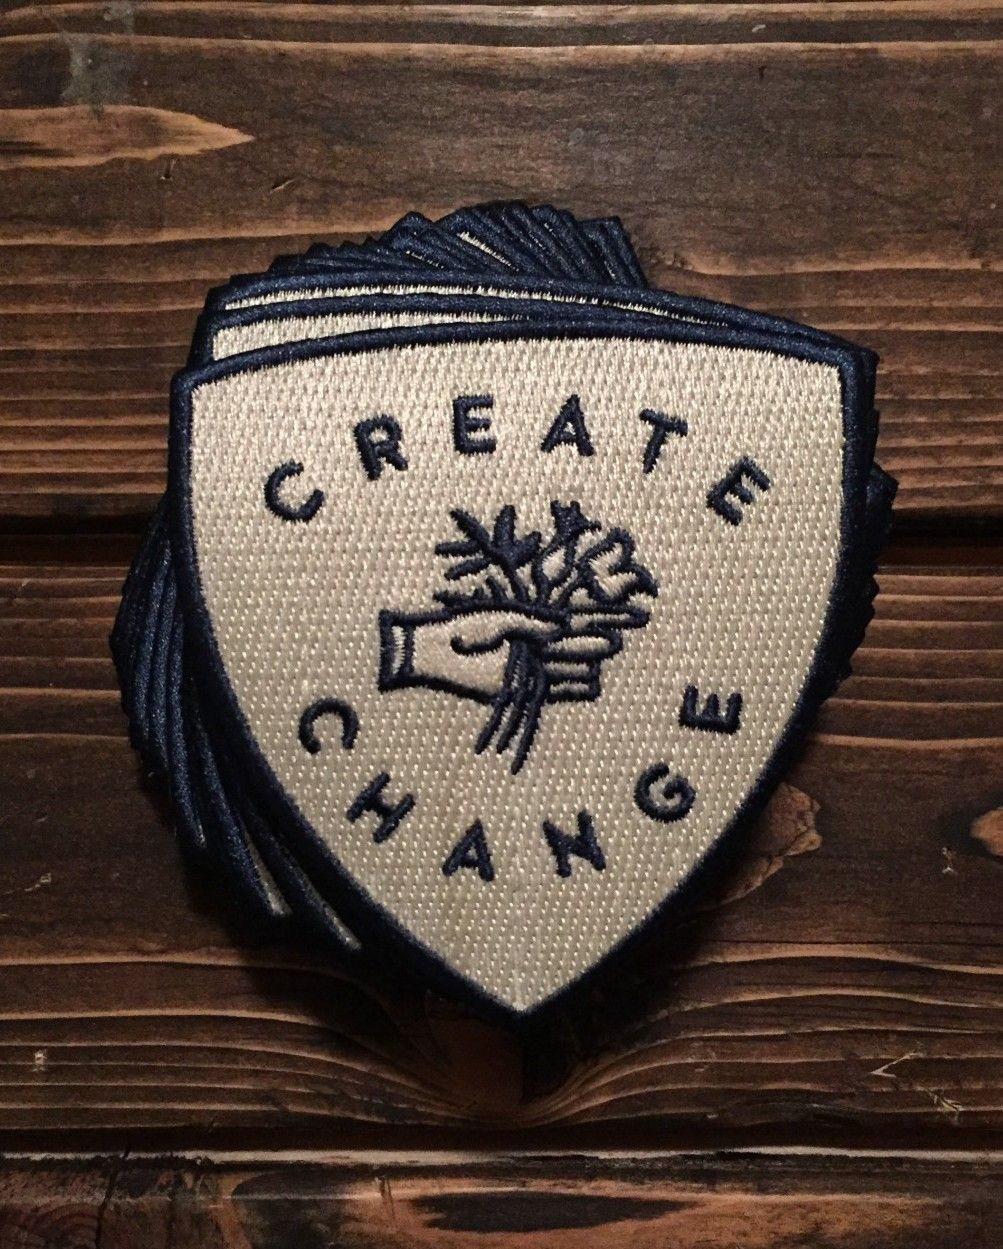 Create Change Iron On Patch Embroidery Patches Embroidered Patches Patch Design How to design a patch